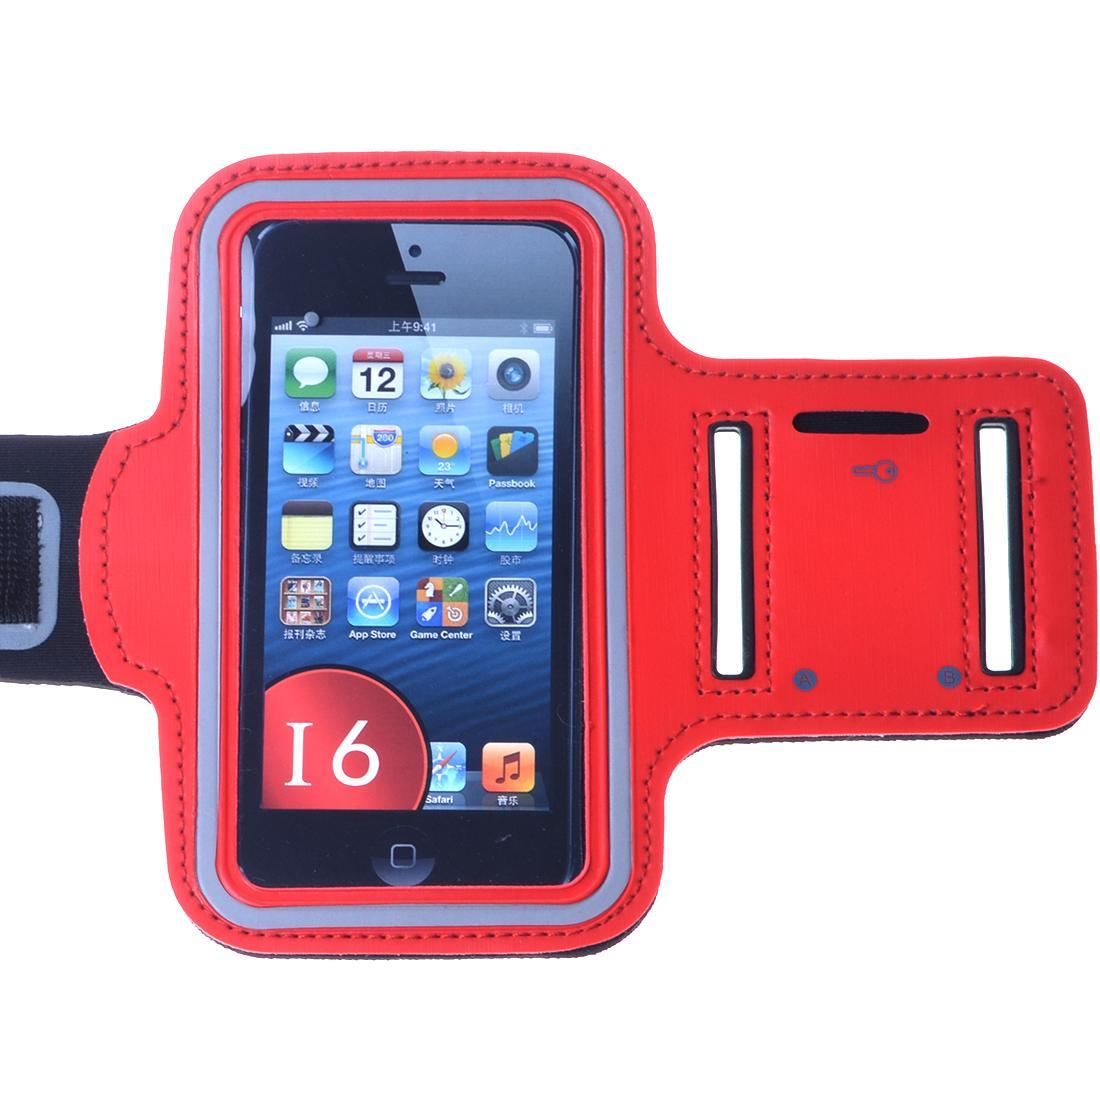 Mobile Phone Accessories Provided Cycling Gym Shockproof Bag Running Exercise Armband Case Key Outdoor Sports Phone Holder Protect Jogging Lightweight Waterproof Modern Techniques